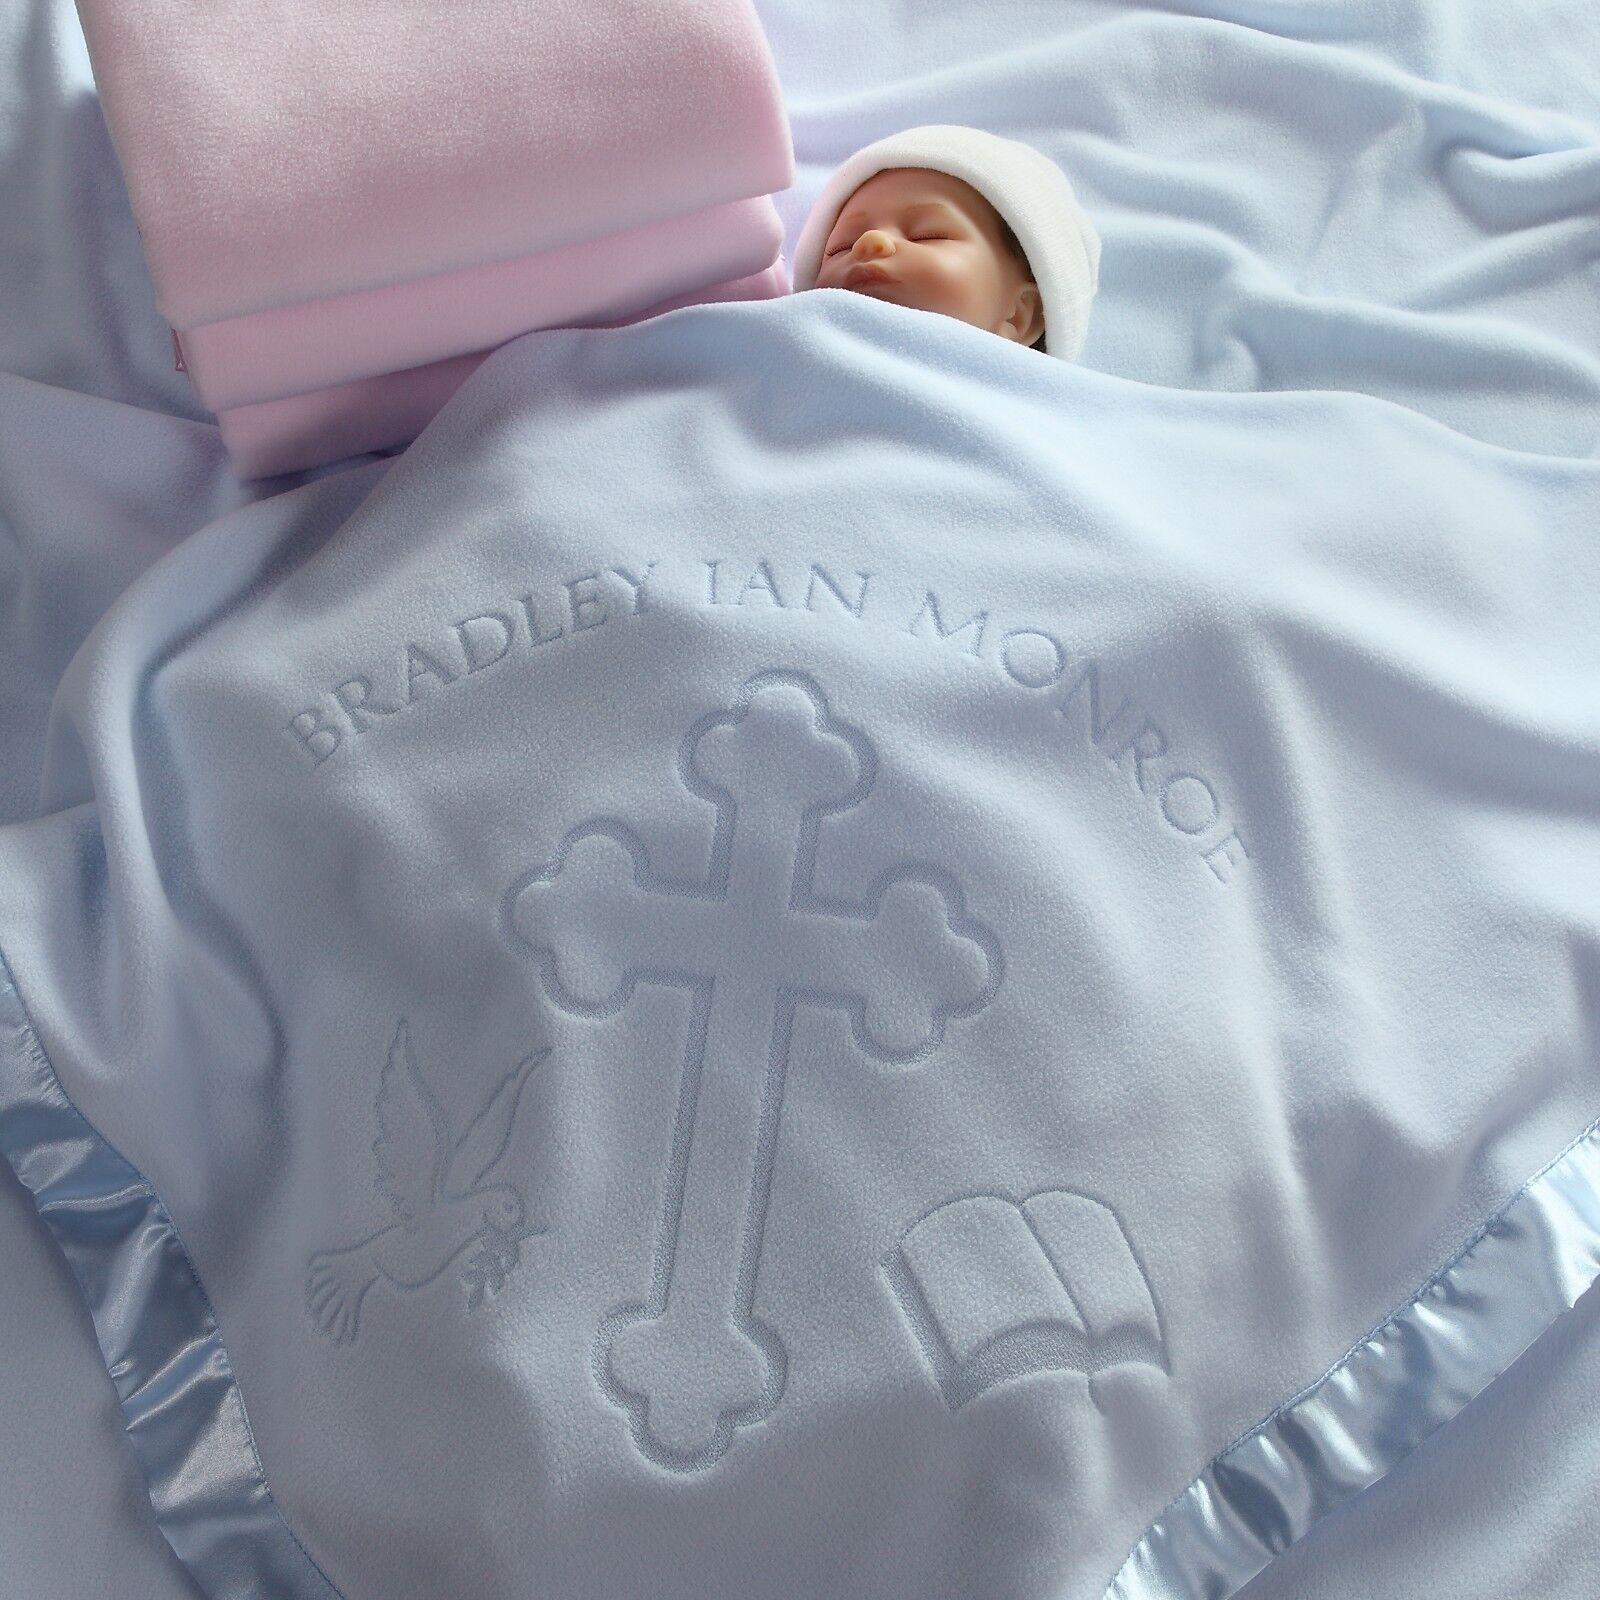 36x36 Personalized Baptism Baby Blanket with Name - Christen